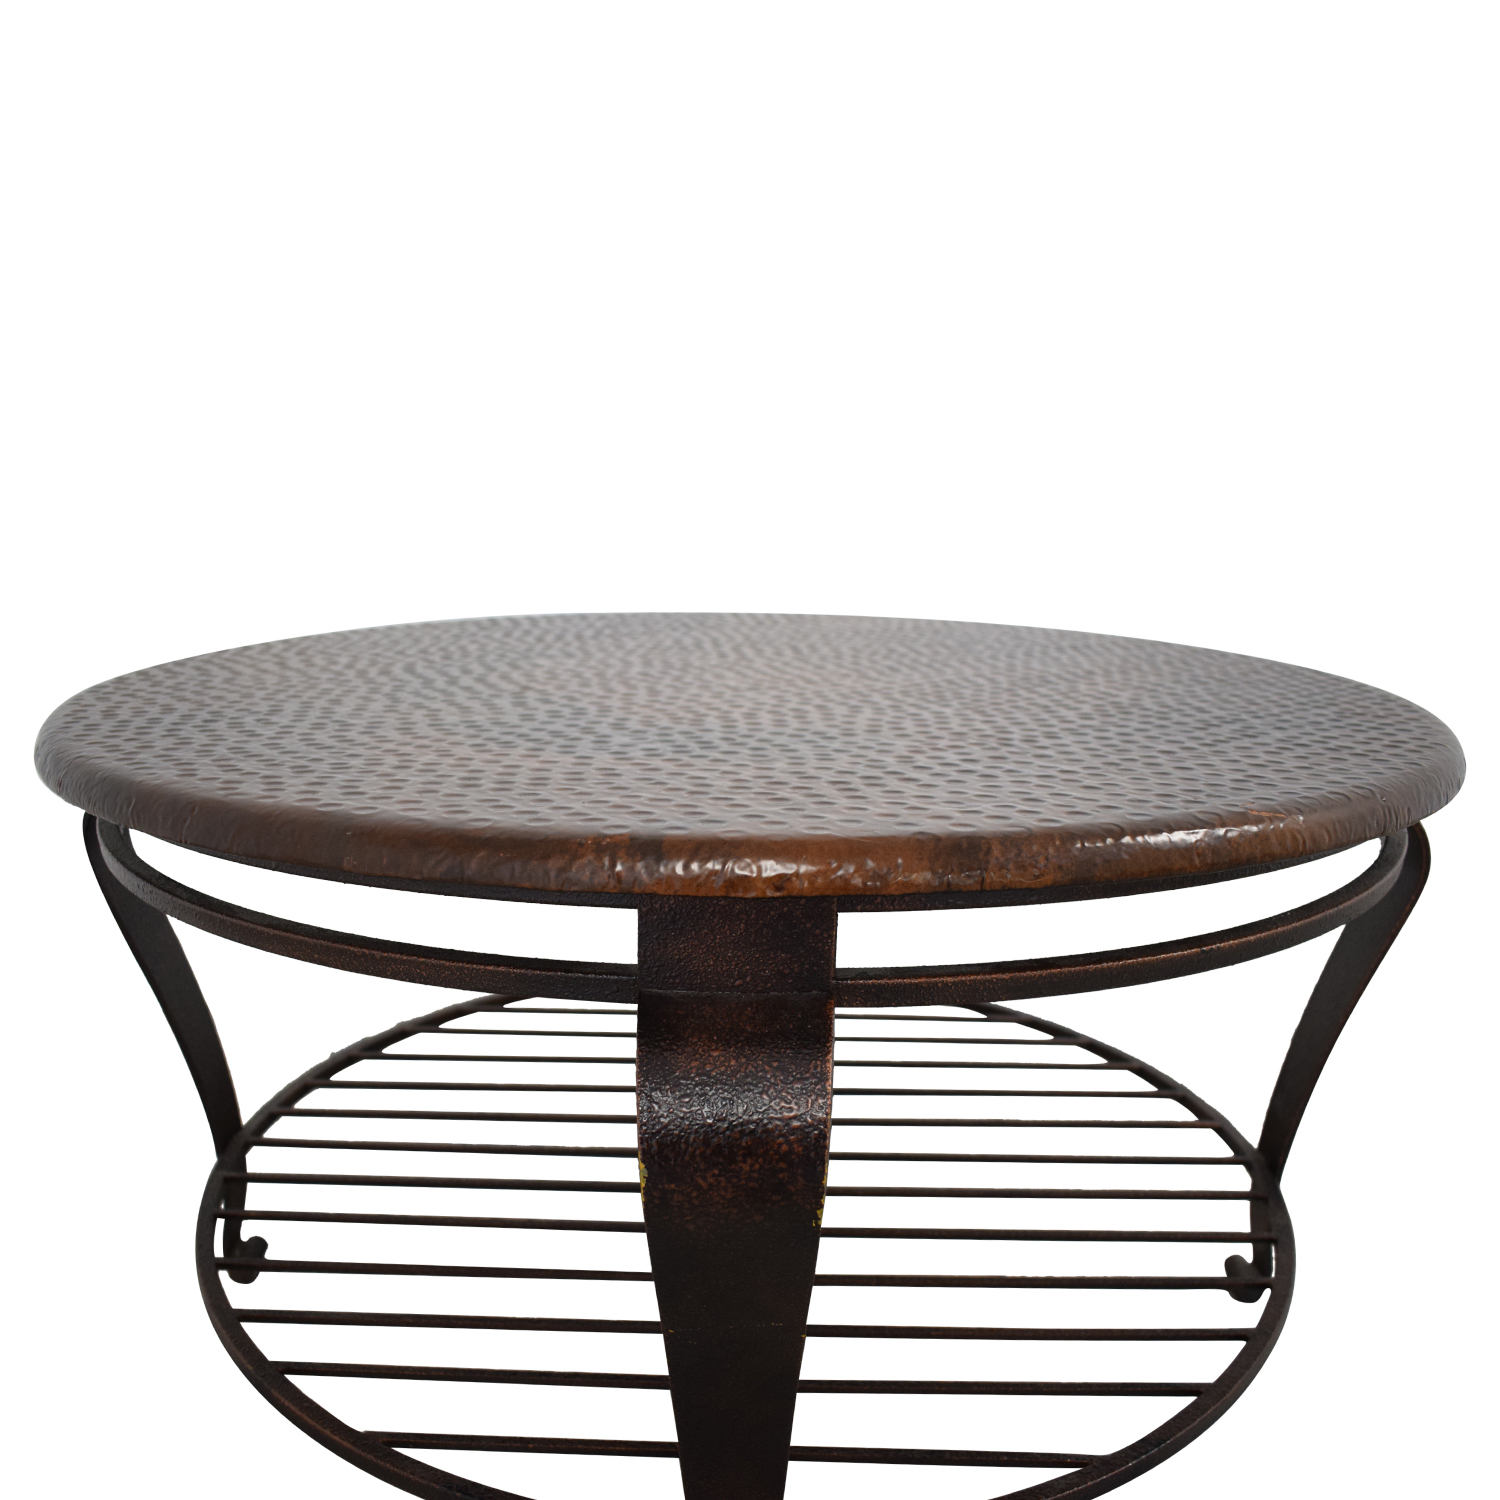 Macy's Coffee Table / Tables